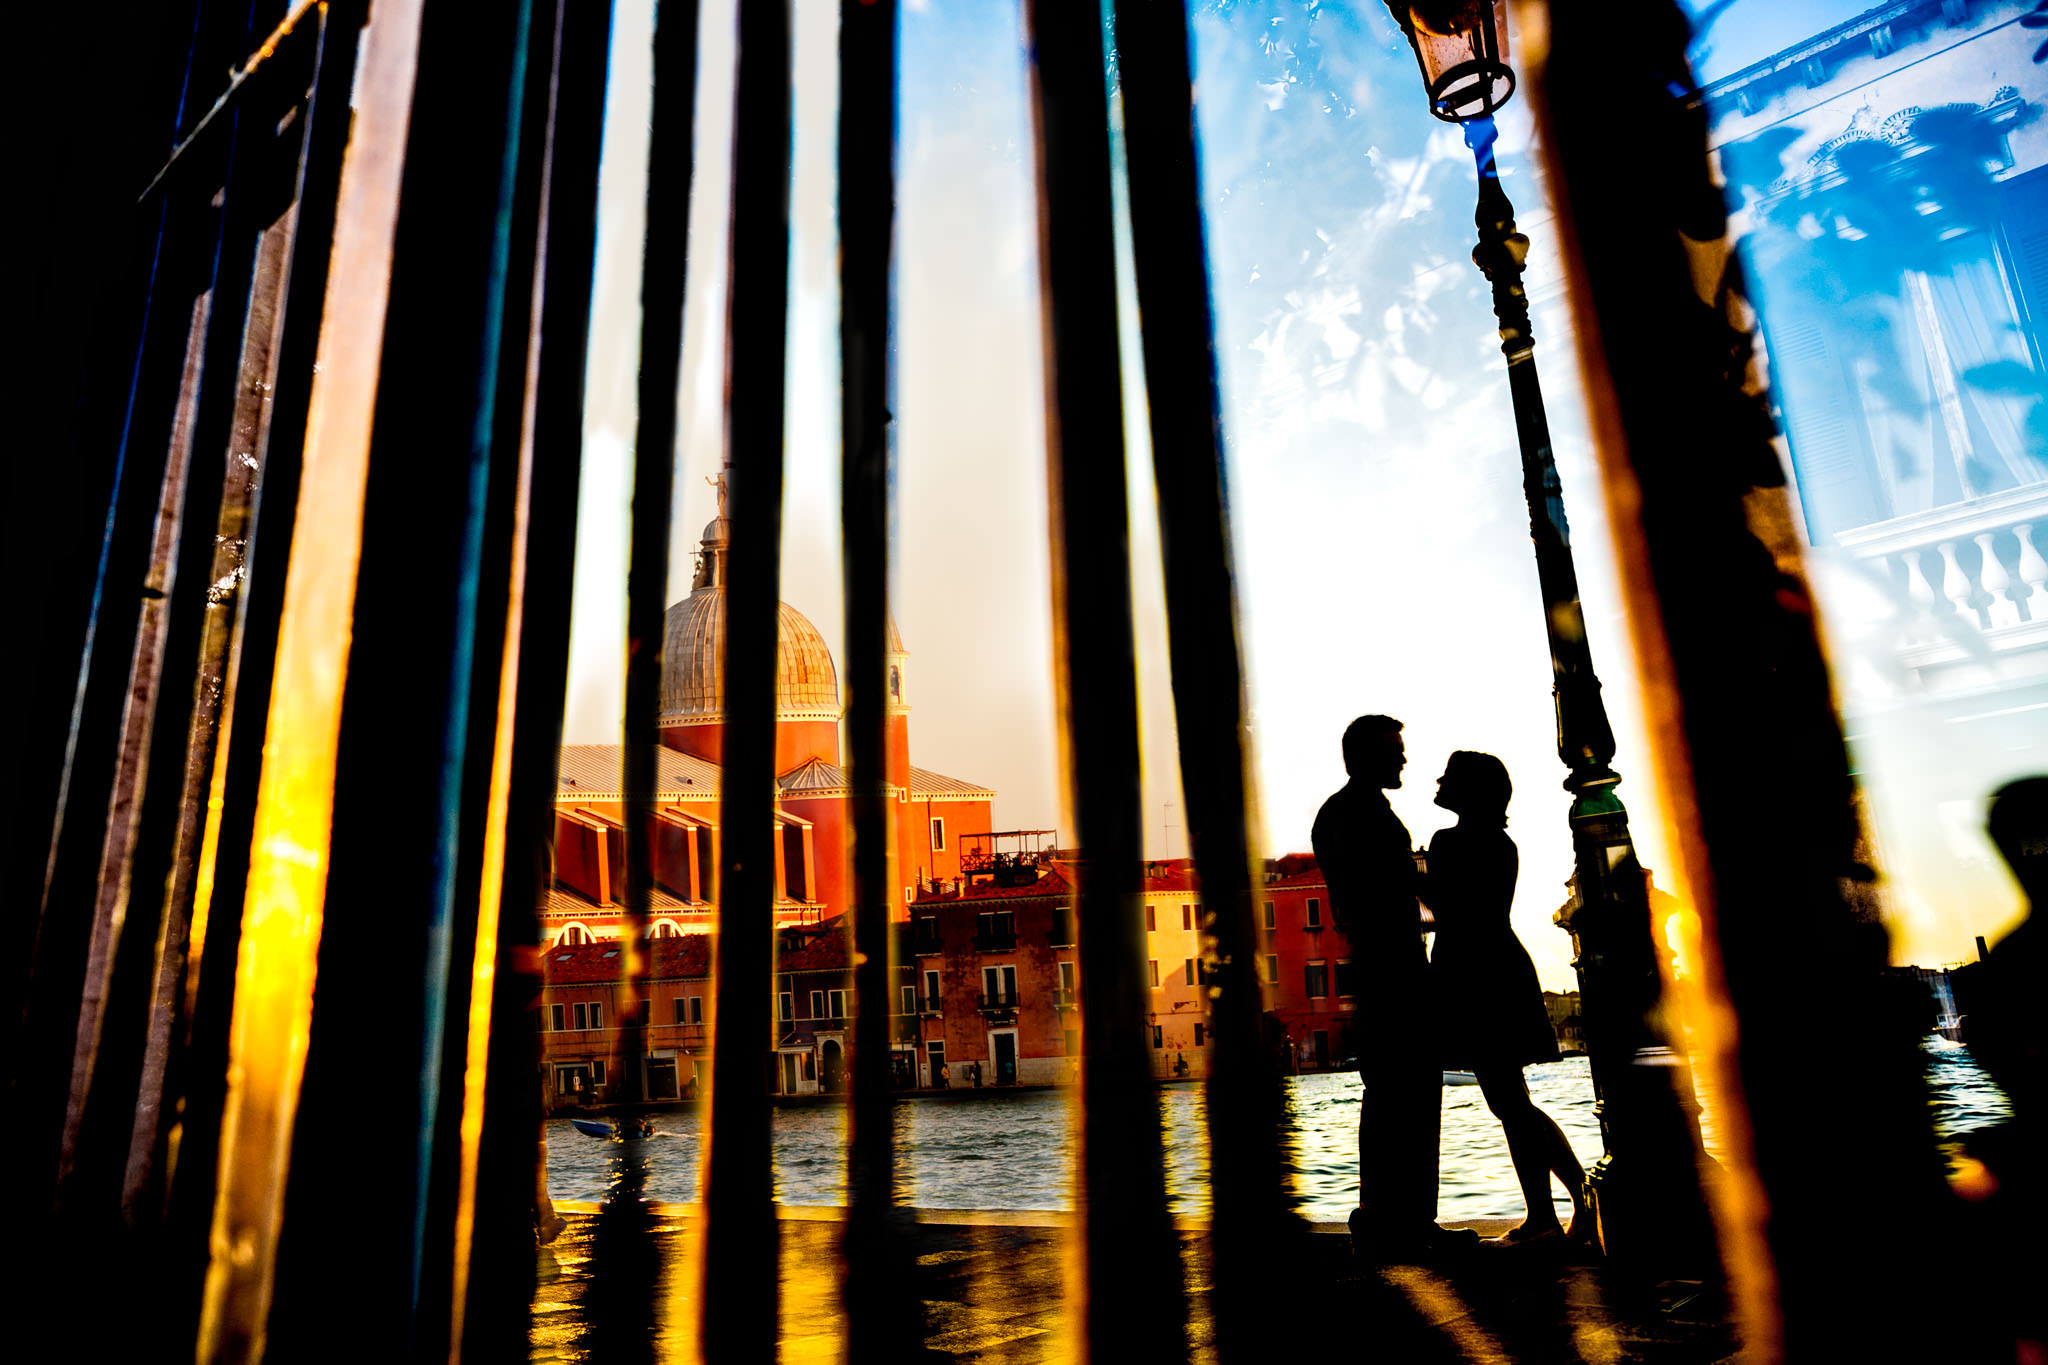 Engagement Photo in Venice with strong silhouettes and colorful buildings at sunset